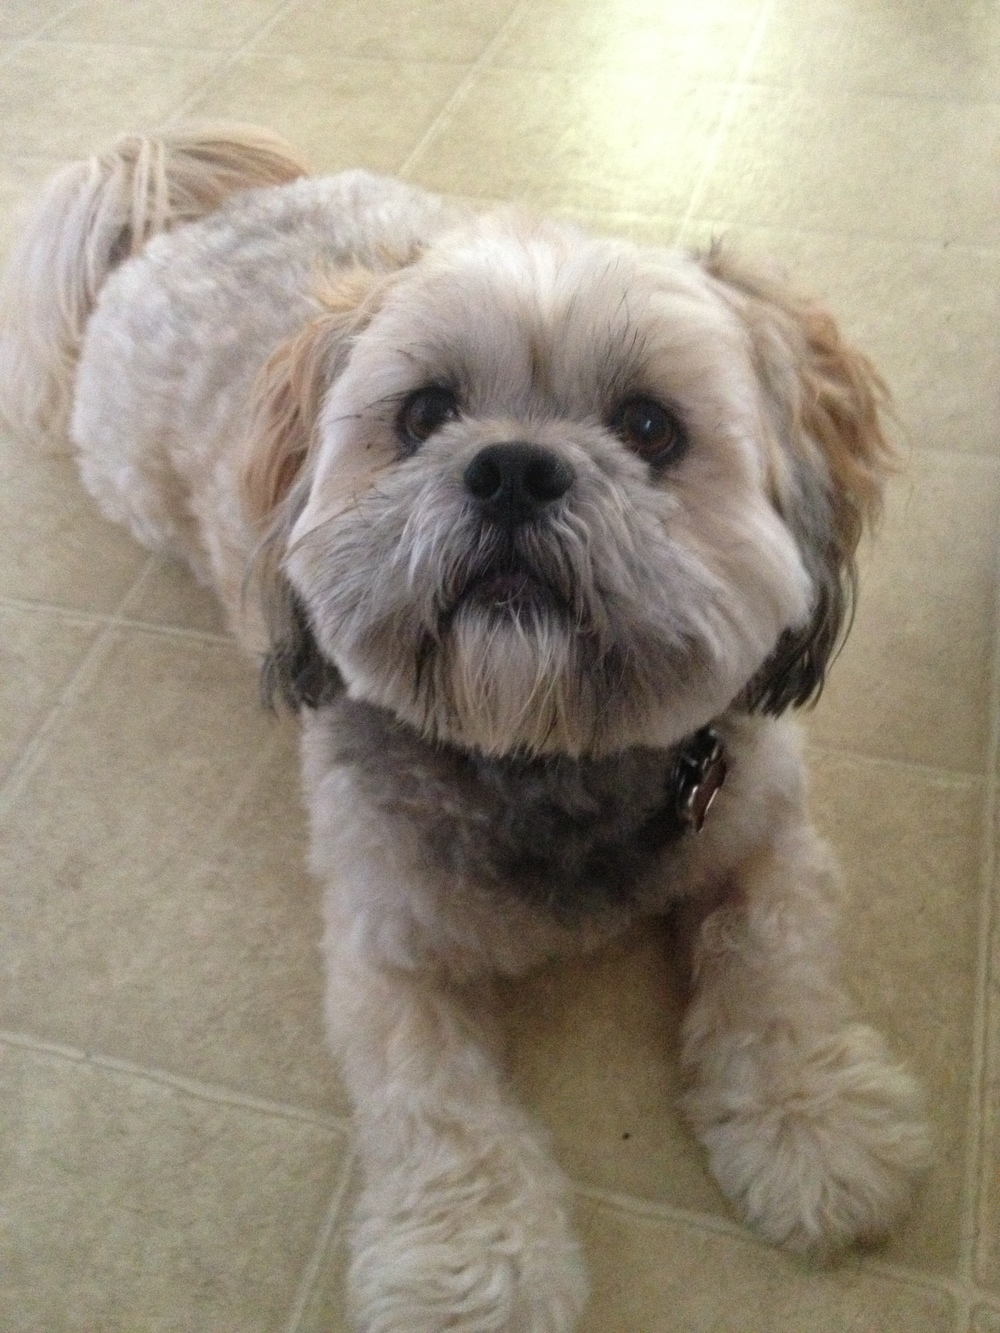 Luci the Lhasa